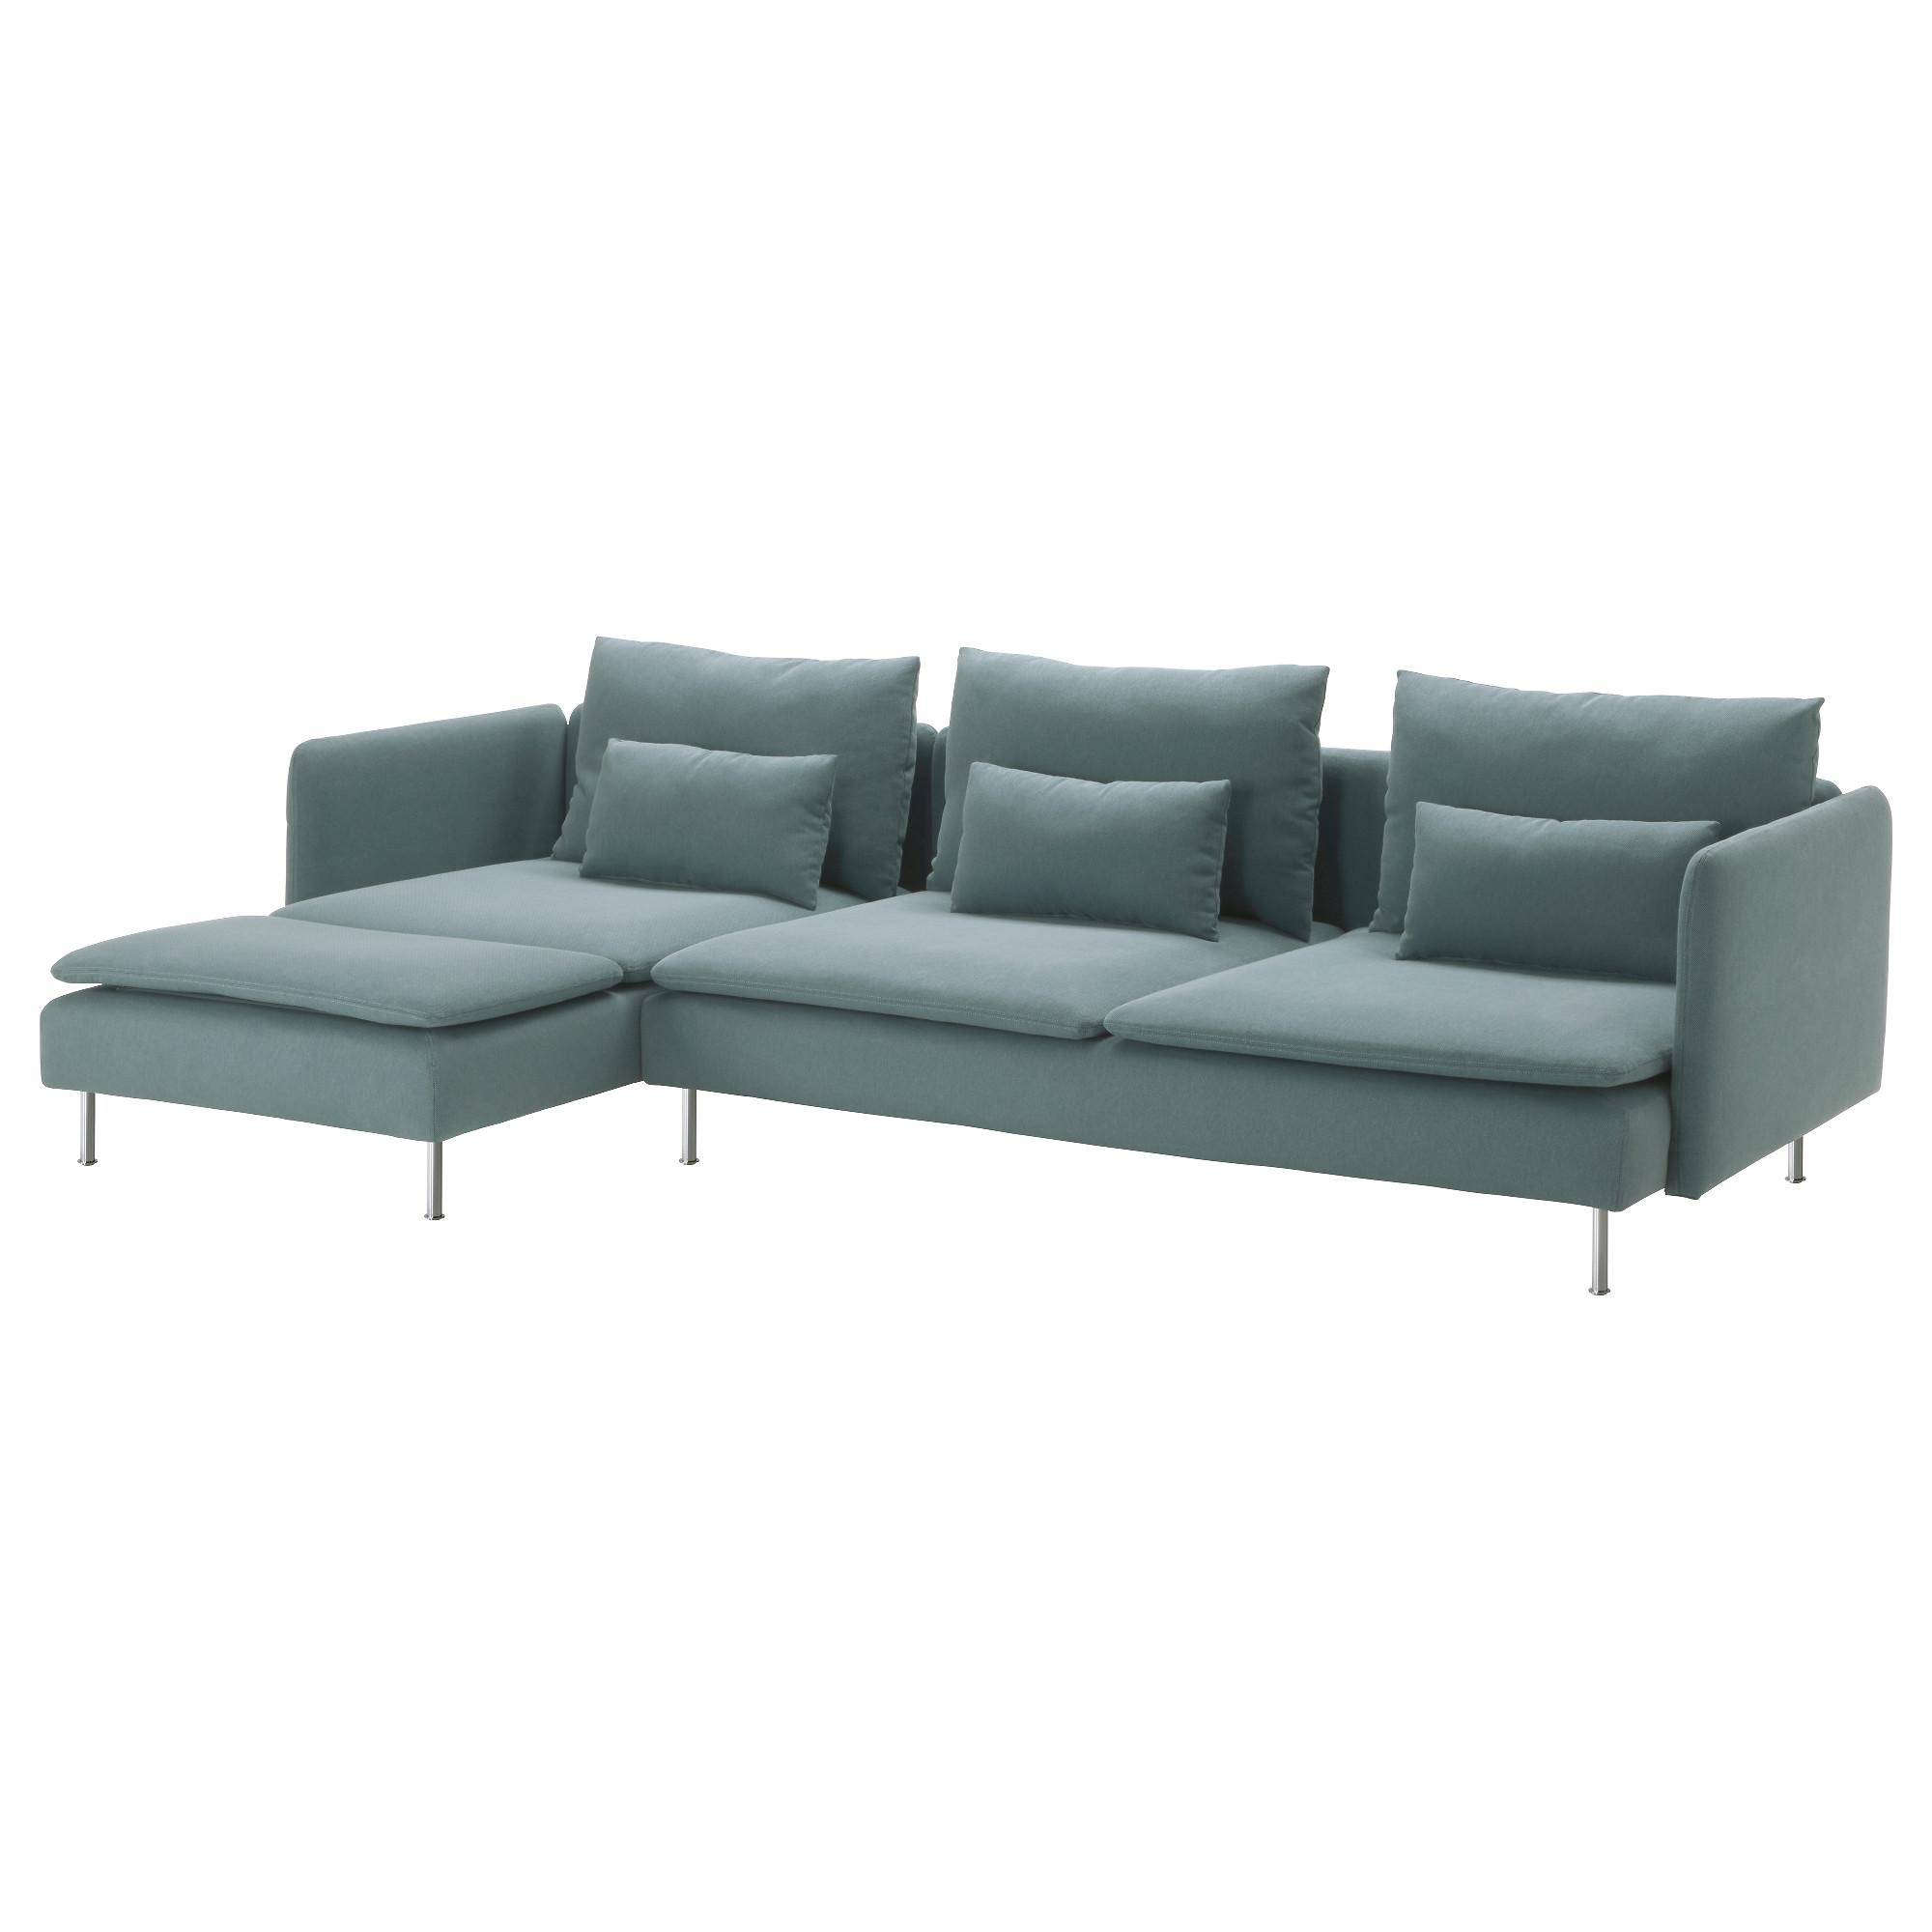 Sectional Sofas & Couches – Ikea Pertaining To Ikea Sectional Sofa Bed (Image 15 of 20)